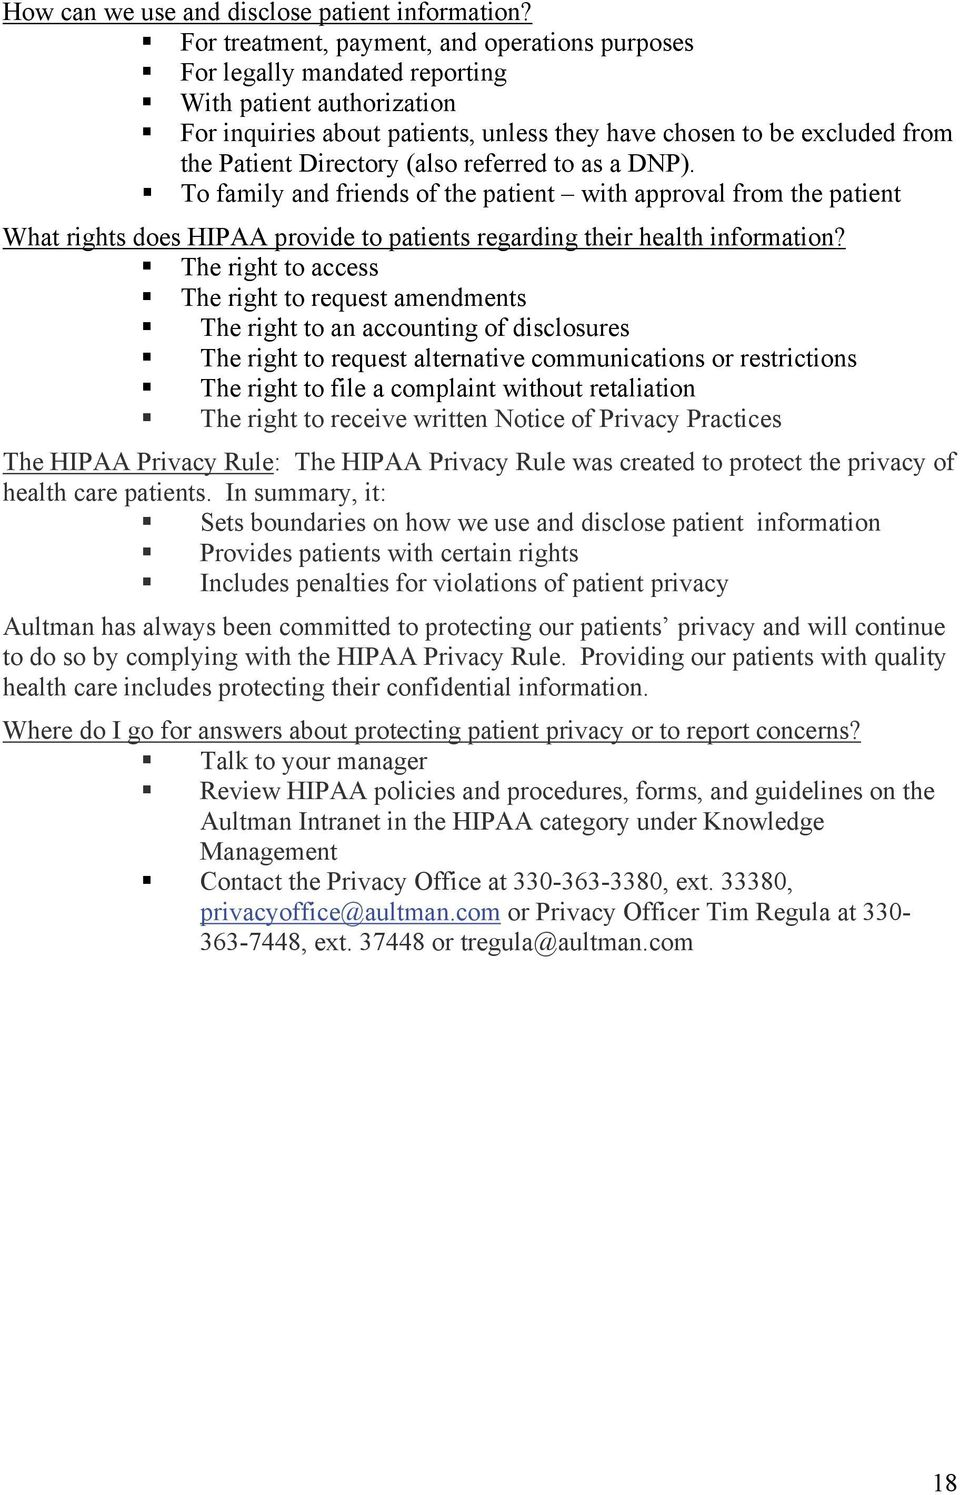 Directory (also referred to as a DNP). To family and friends of the patient with approval from the patient What rights does HIPAA provide to patients regarding their health information?